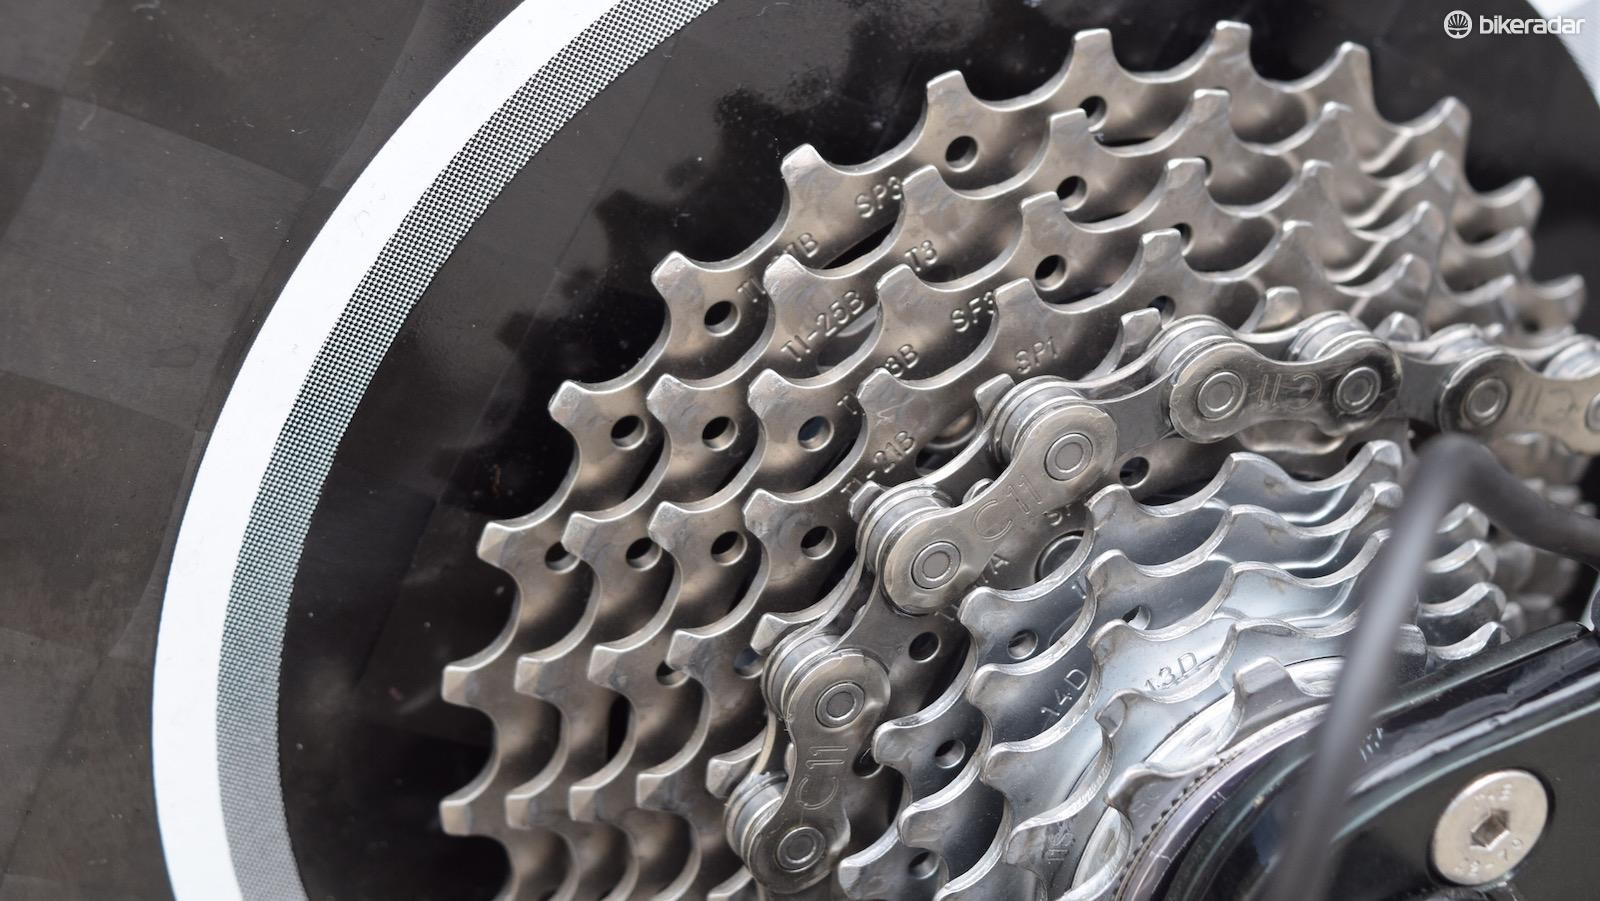 Thomas De Gendt rode an 11-27 tooth cassette